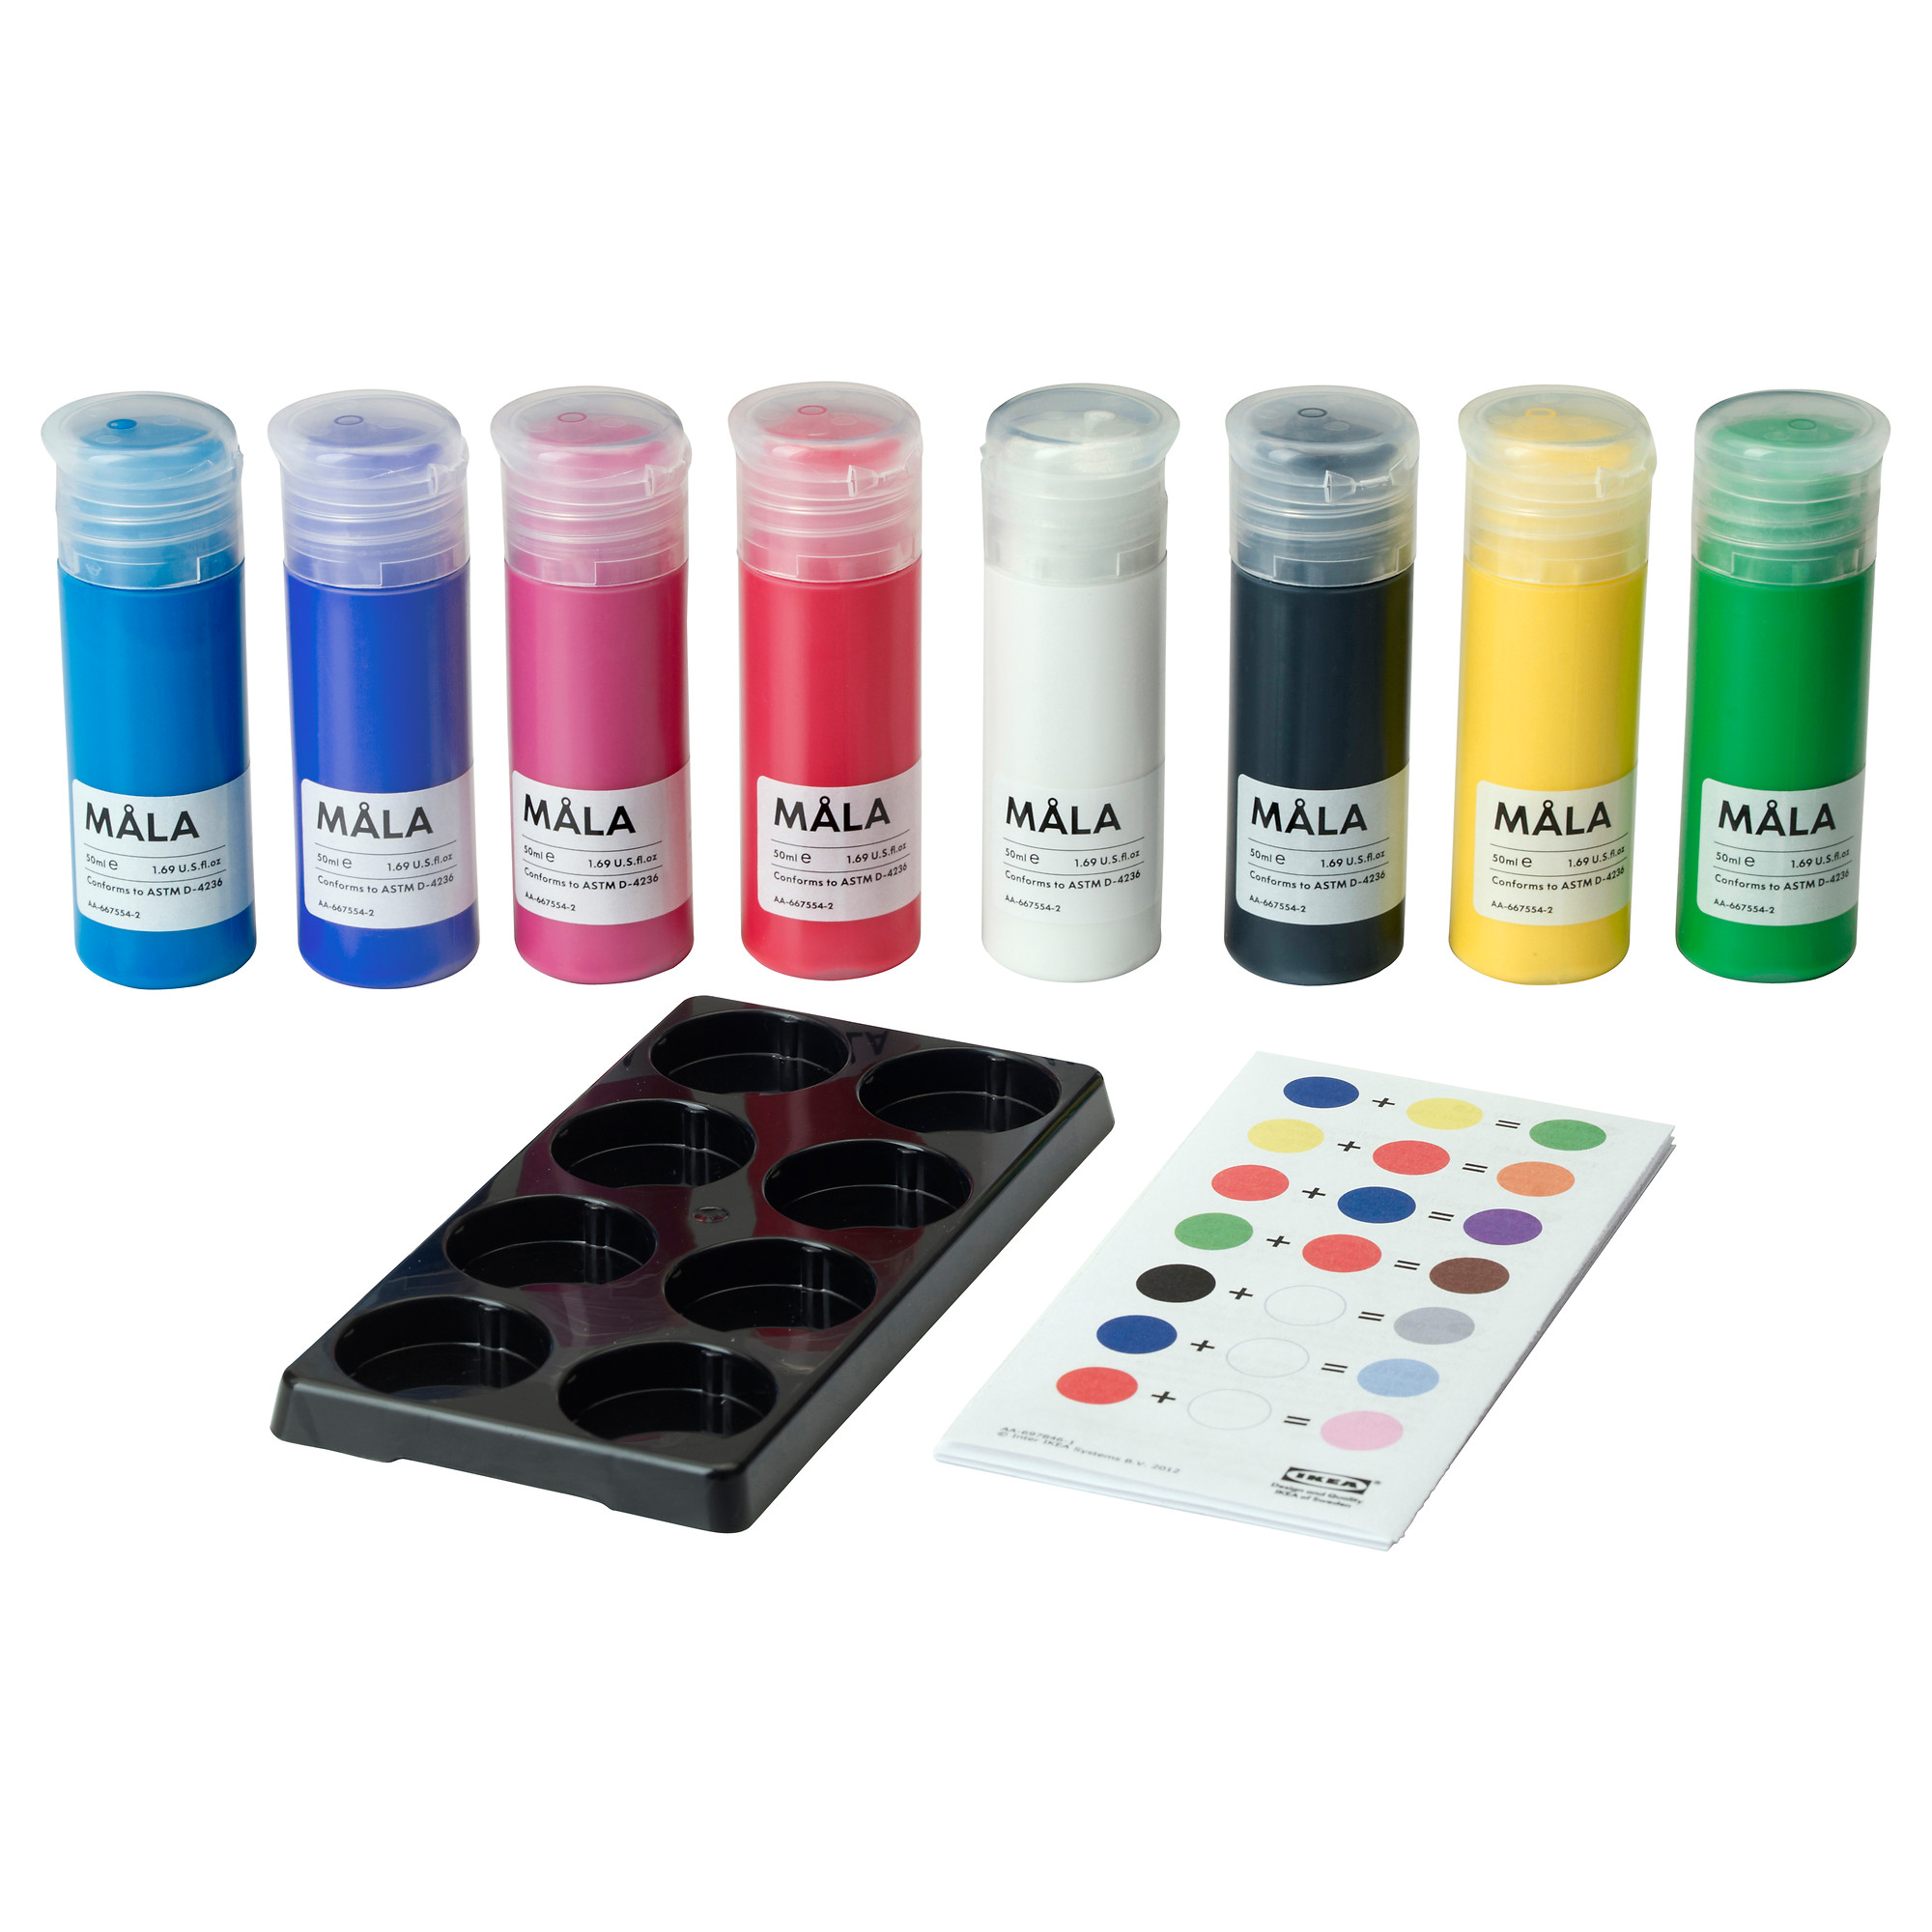 Mala Paint Mixed Colors Assorted Colors Ikea Ikea Kids